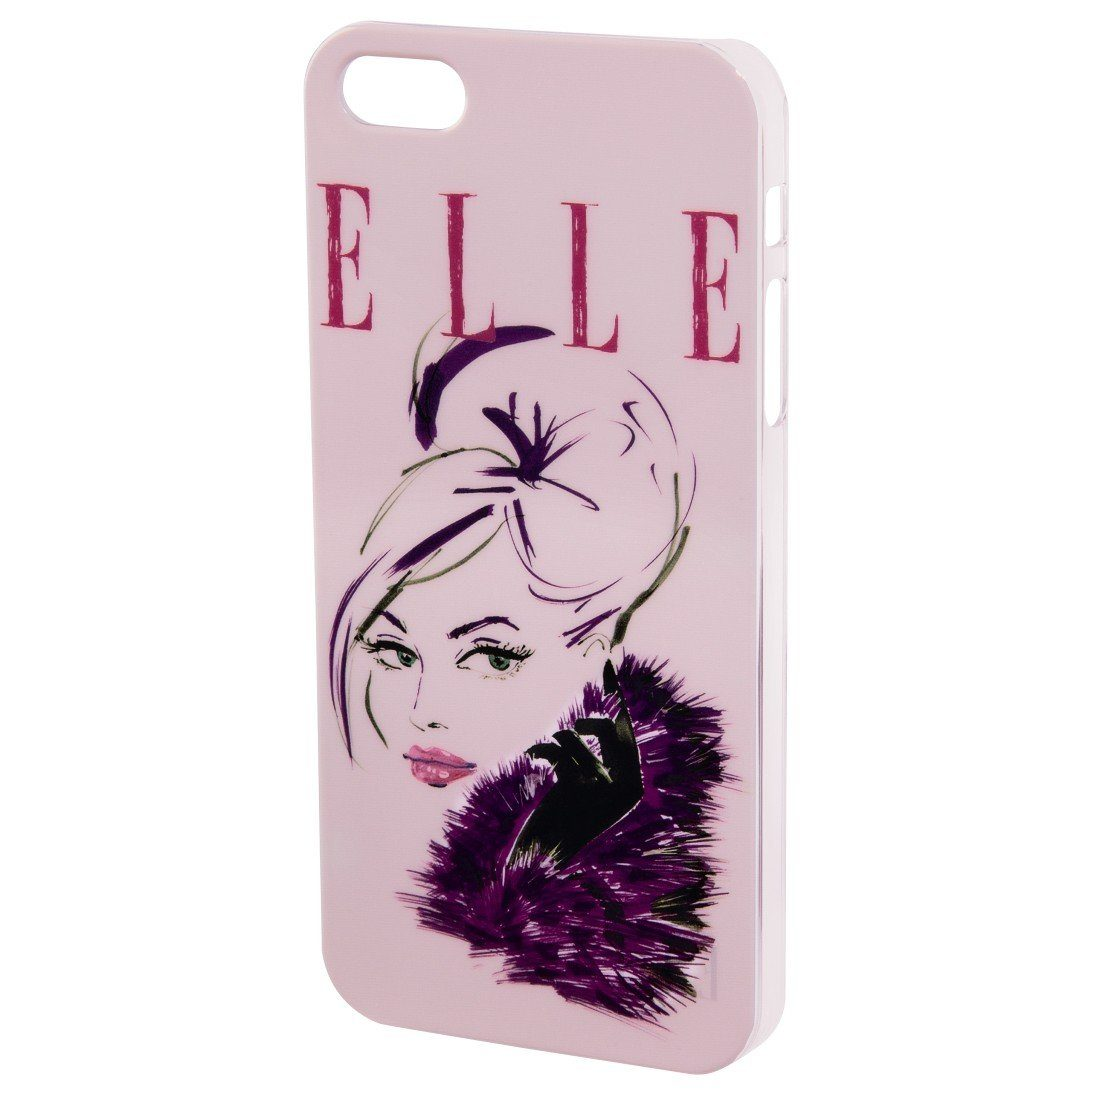 ELLE Handy-Cover Lady in Pink für Apple iPhone 4/4S, Rosa